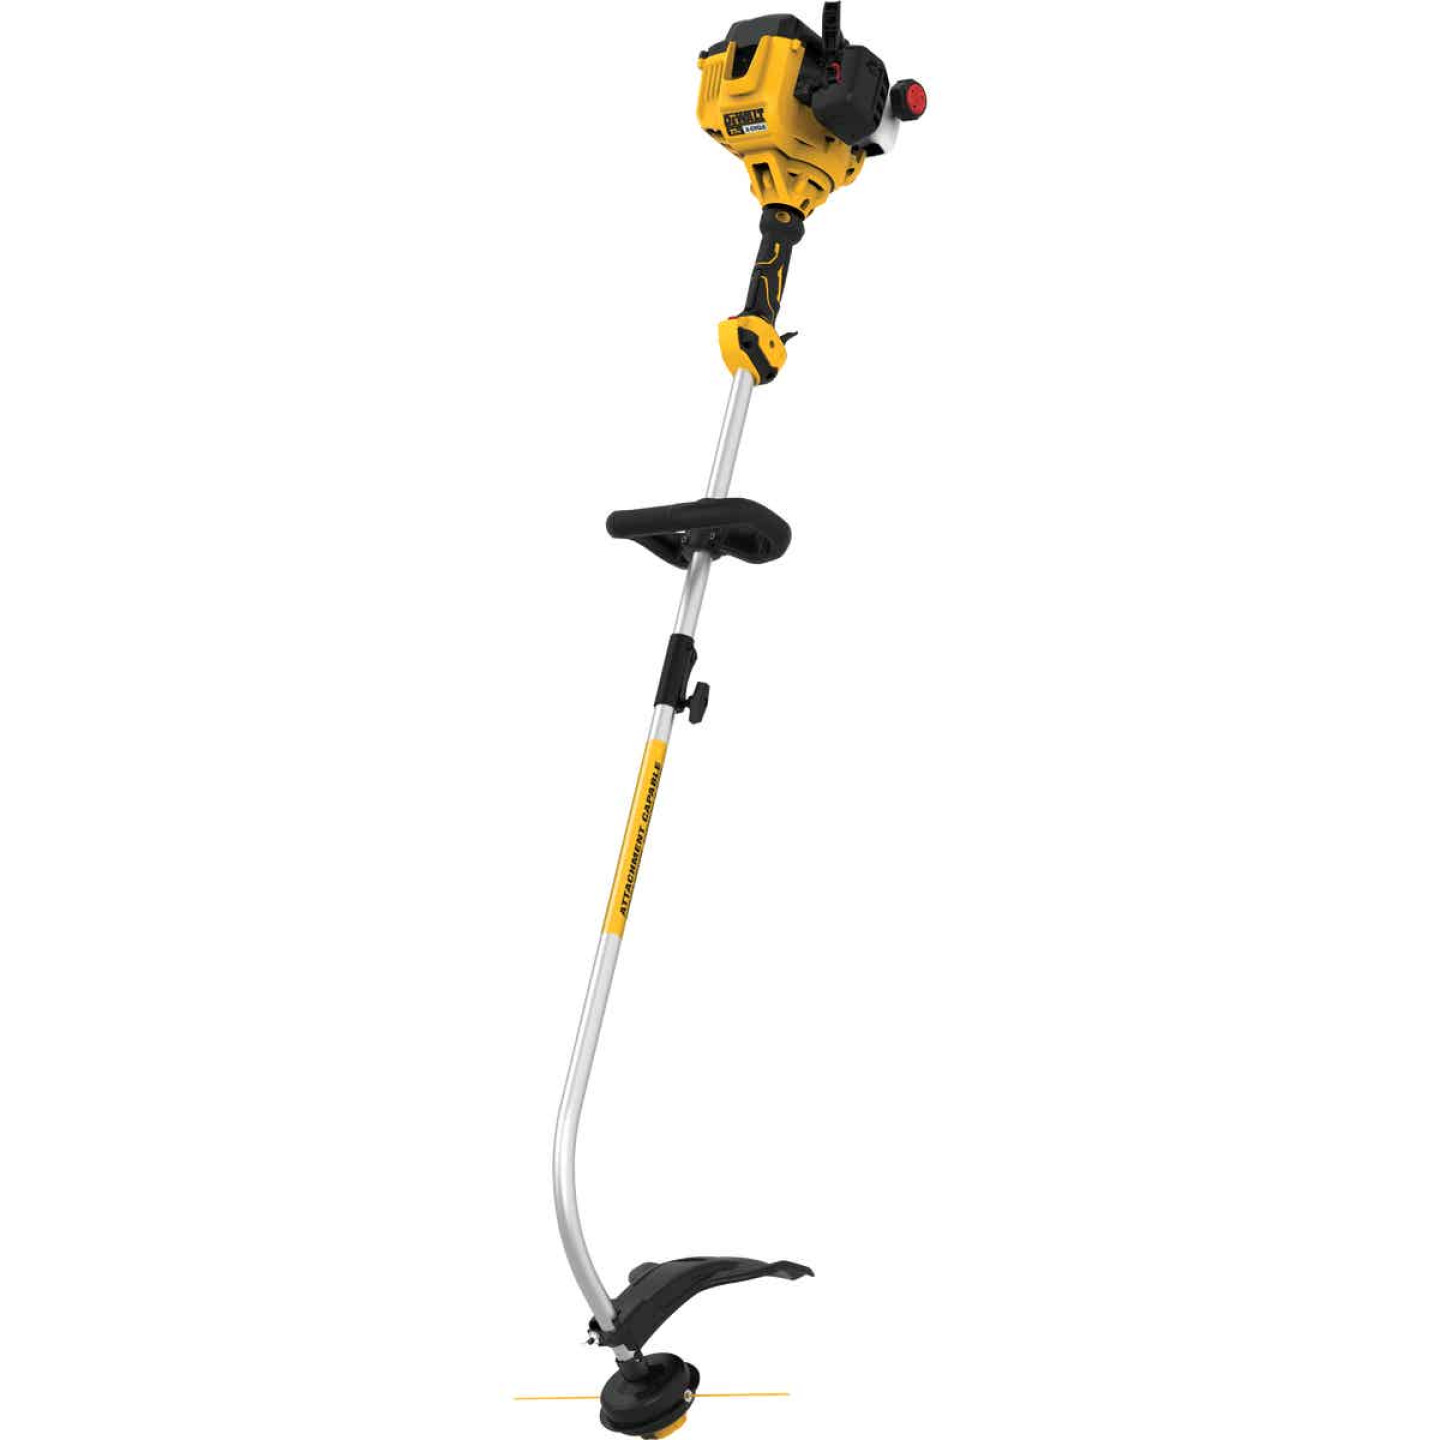 DeWalt Trimmer Plus 27cc 2-Cycle 17 In. Curve Shaft Gas String Trimmer Image 1